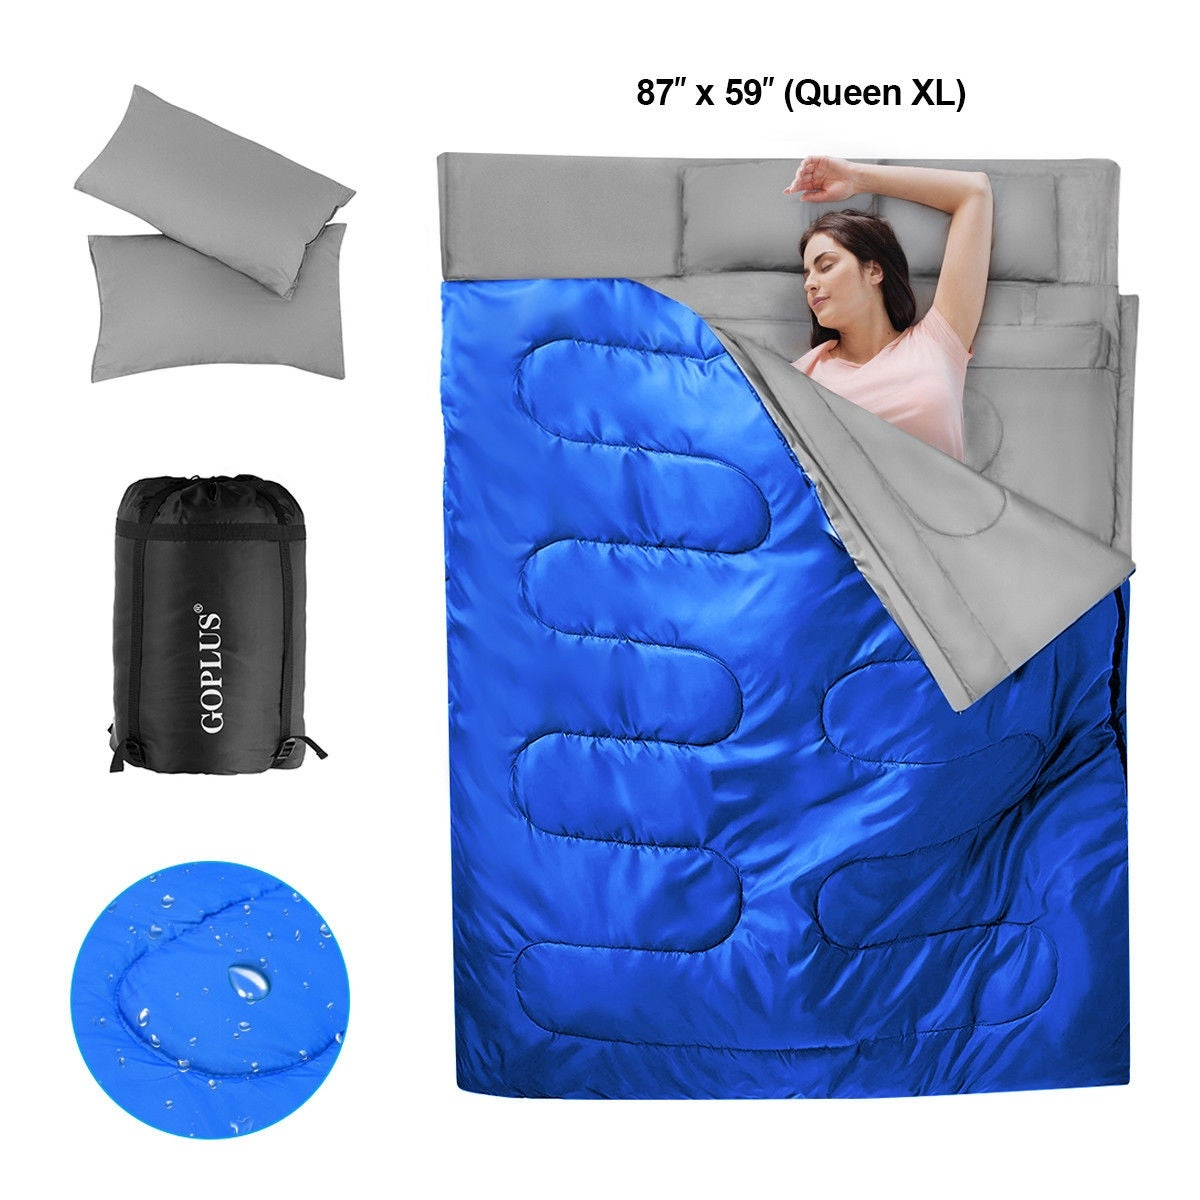 Goplus Double 2 Person Sleeping Bag Waterproof W Pillows Camping Queen Size Xl